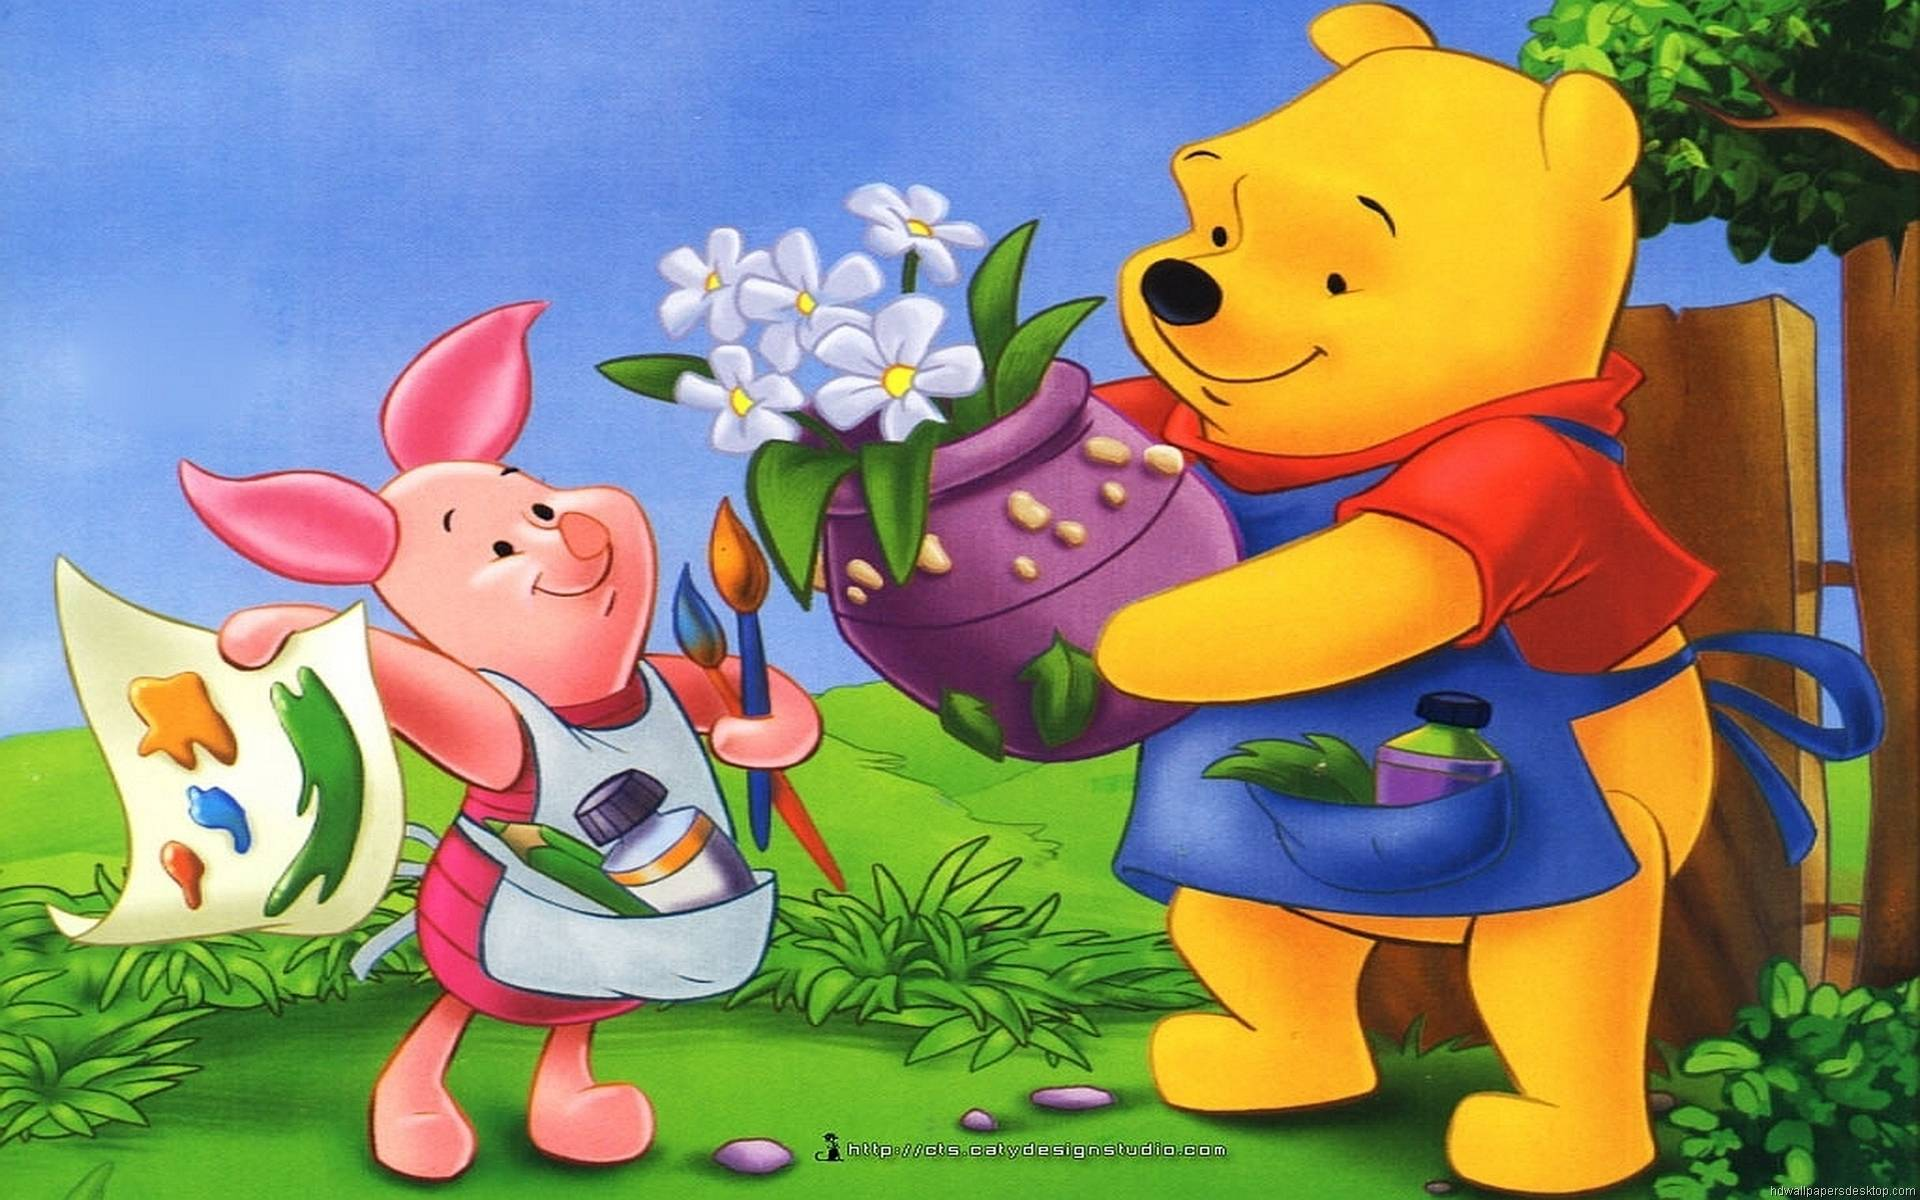 Piglet and Pooh   Disney Wallpaper 1920x1200